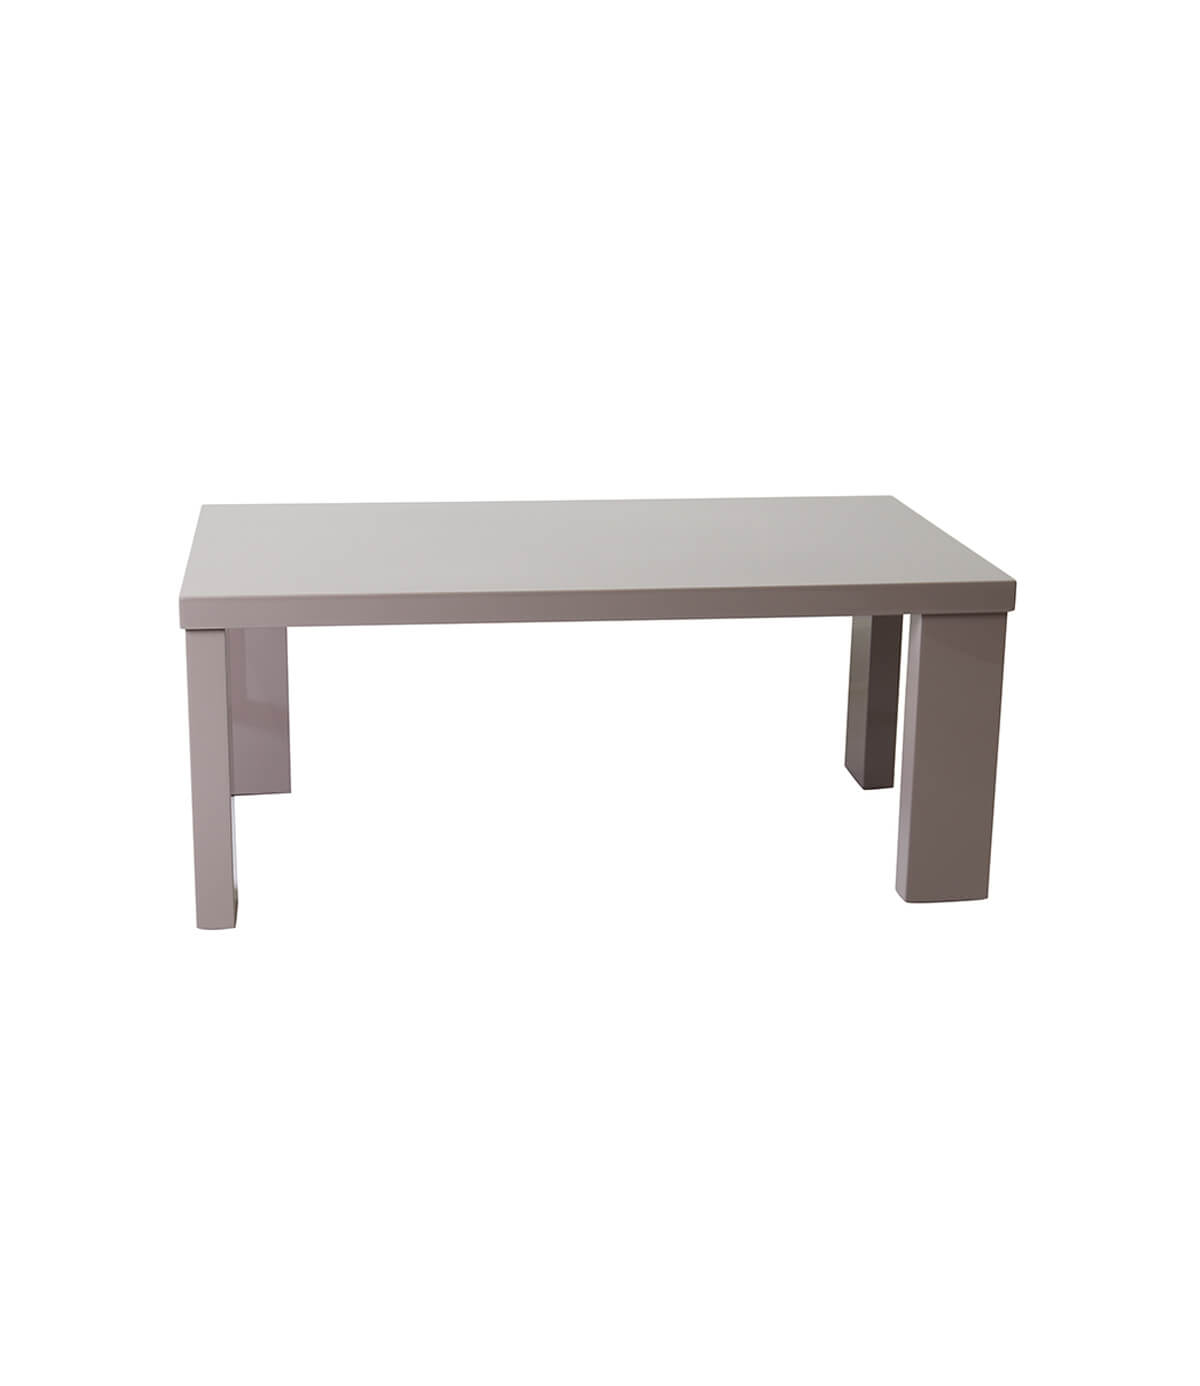 Grey High Gloss Coffee Table Uk: Manchester Furniture Supplies